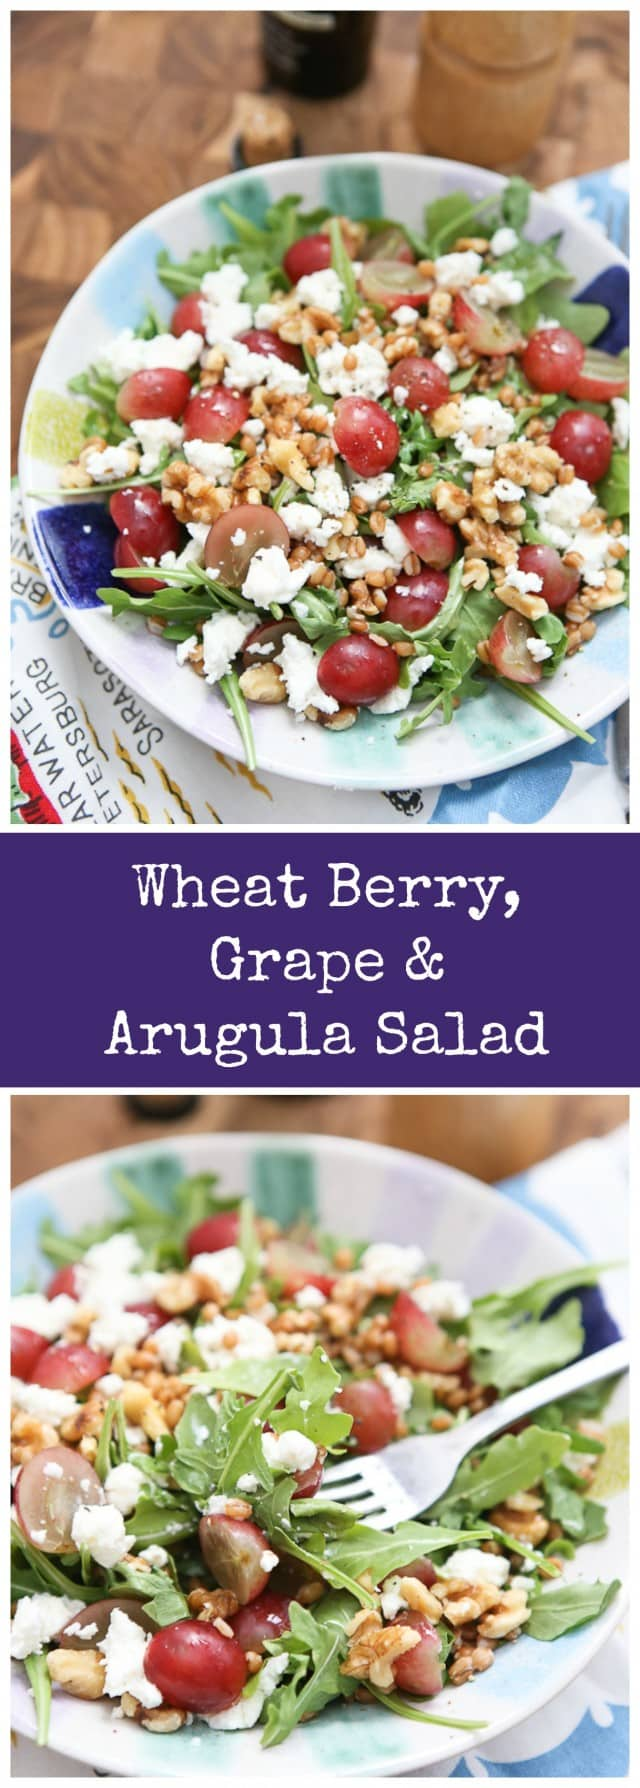 One of my all time favorite salads! Full of flavor and texture, this Wheat Berry and Arugula Salad with Grapes and Nuts will satisfy any salad craving - and you'll feel good eating it too!